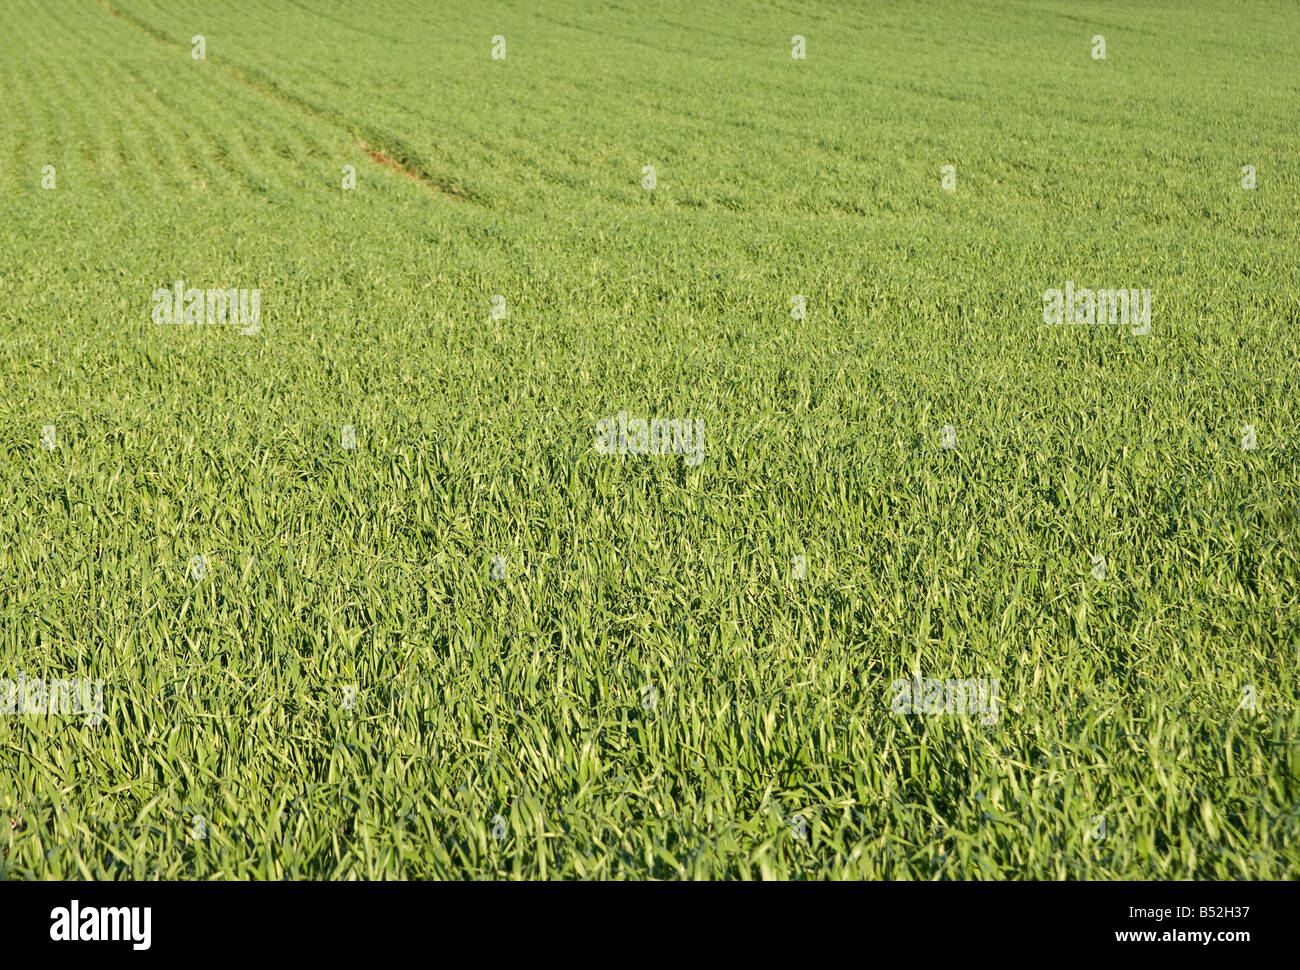 great image of a nice green field of grass - Stock Image